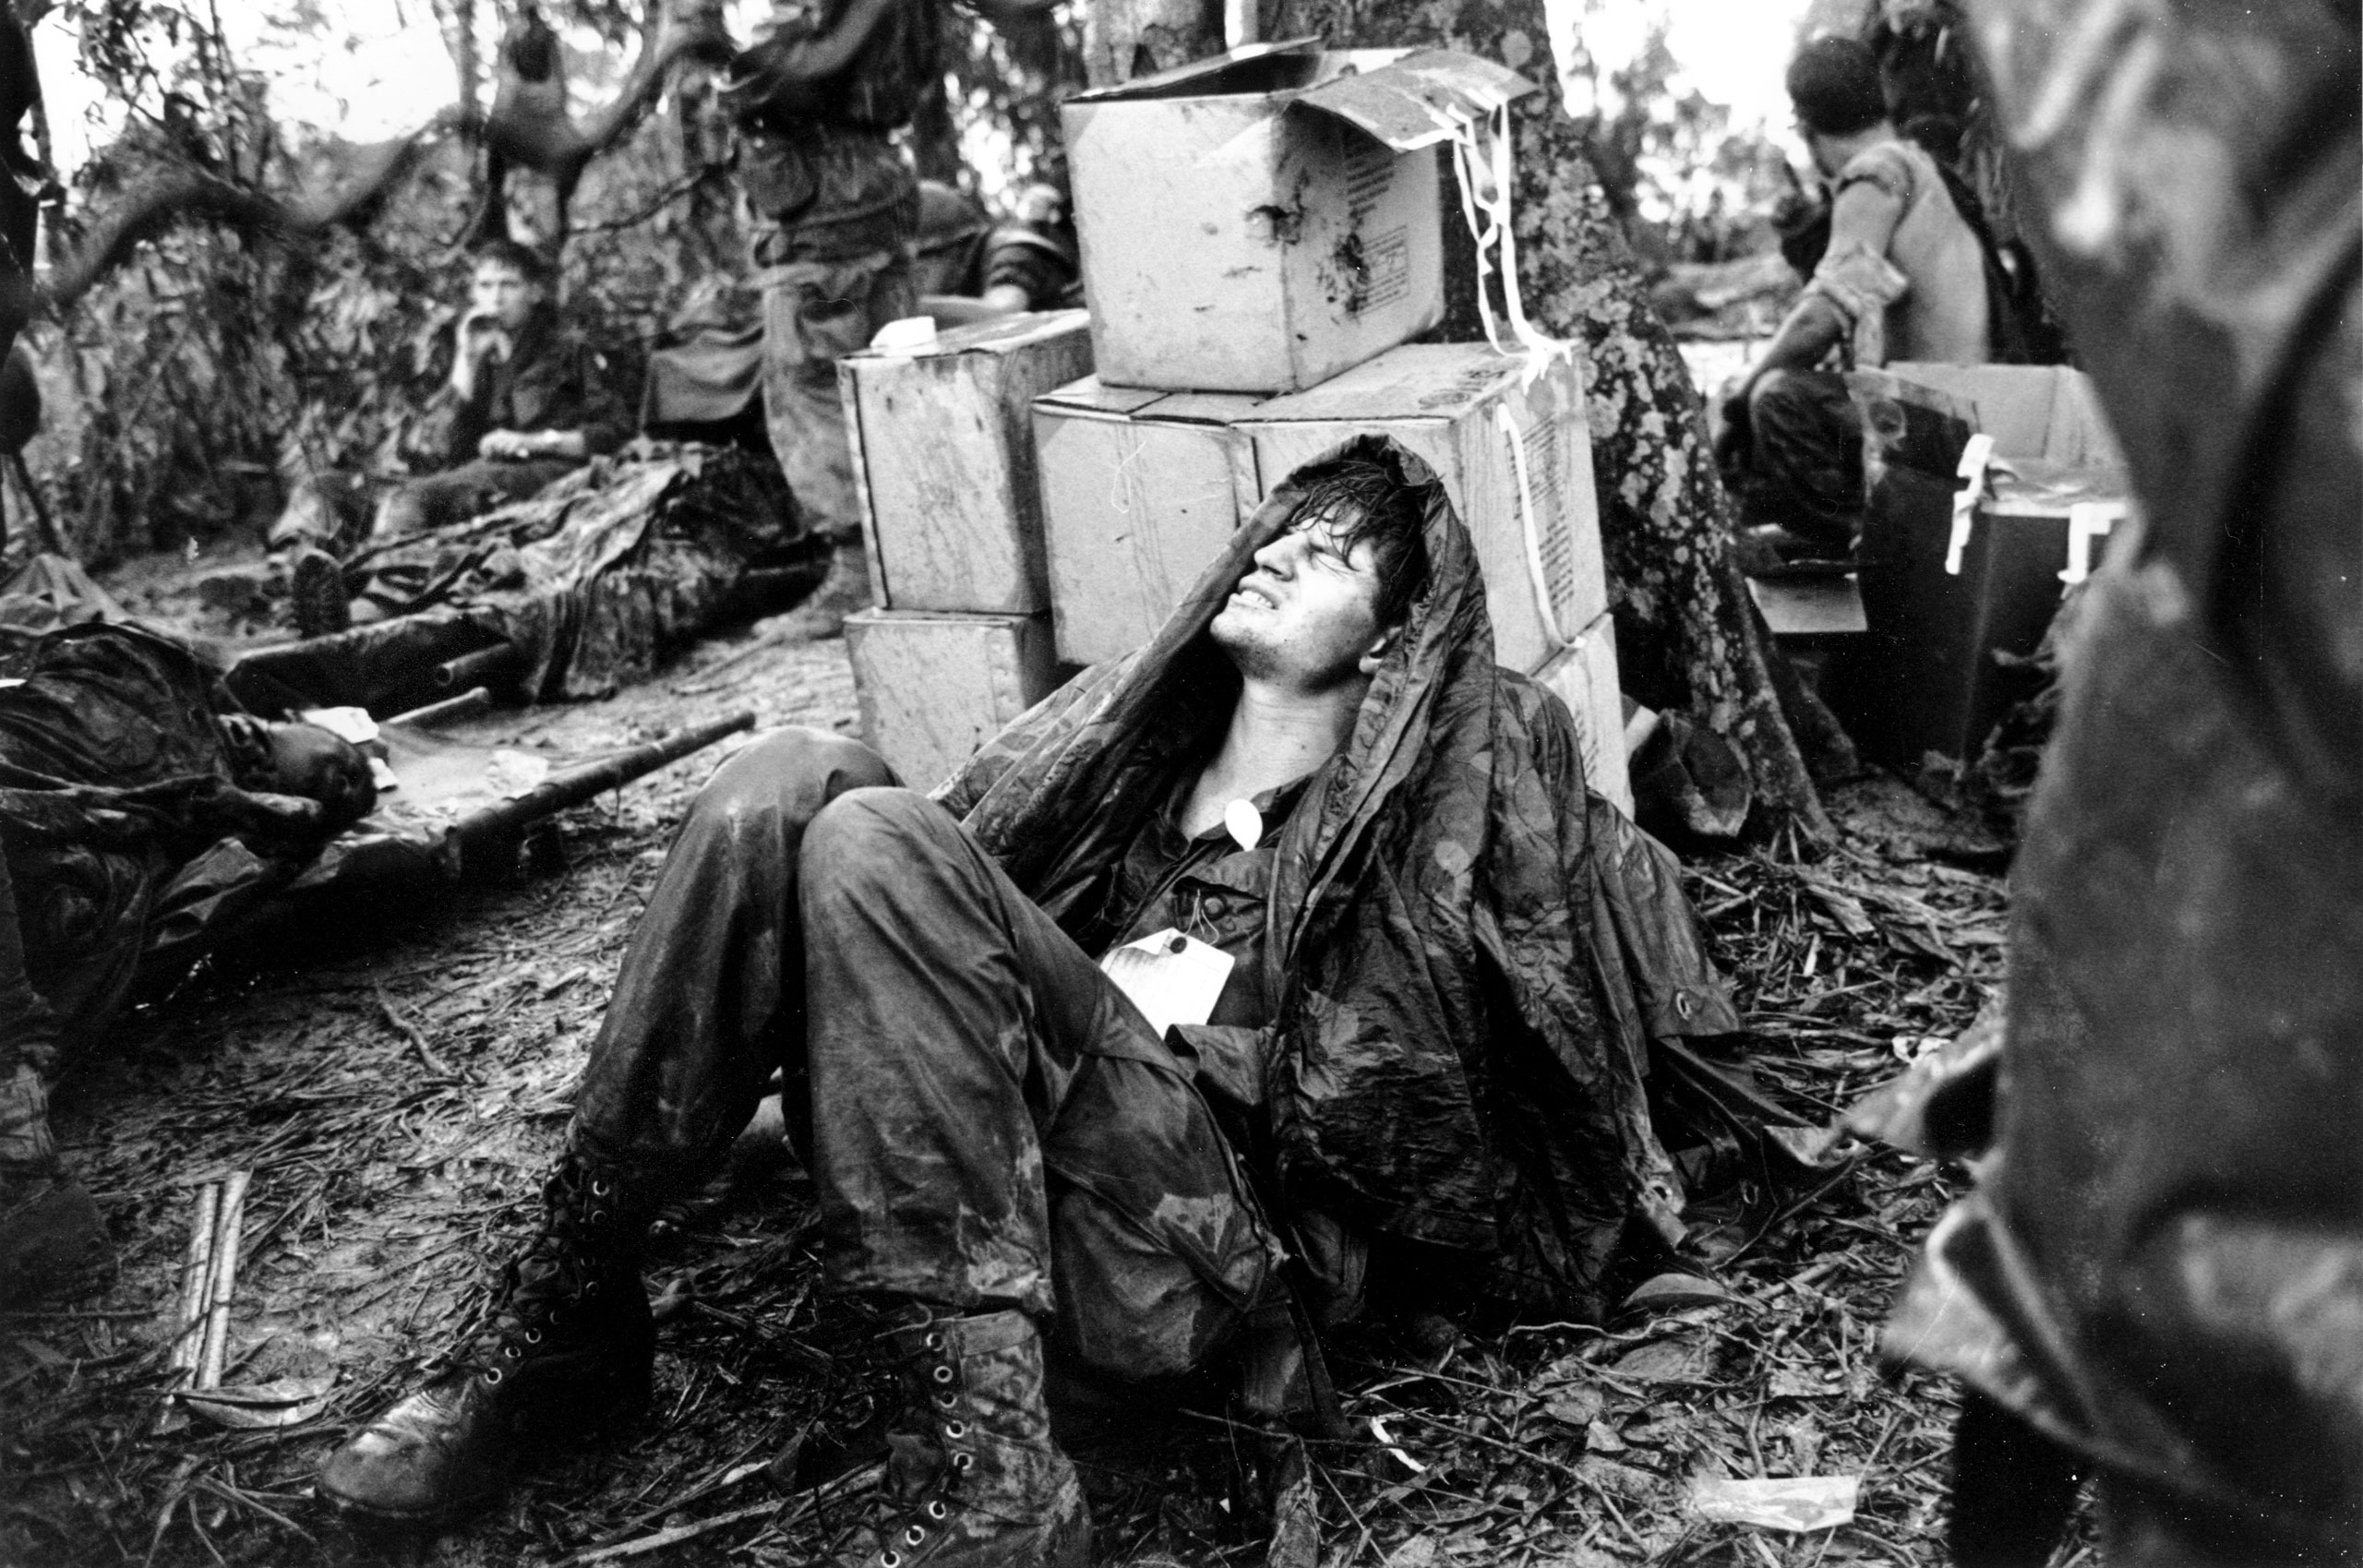 A wounded U.S. paratrooper grimaces in pain as he awaits medical evacuation at base camp in the A Shau Valley near the Laos border in South Vietnam on May 19, 1969.